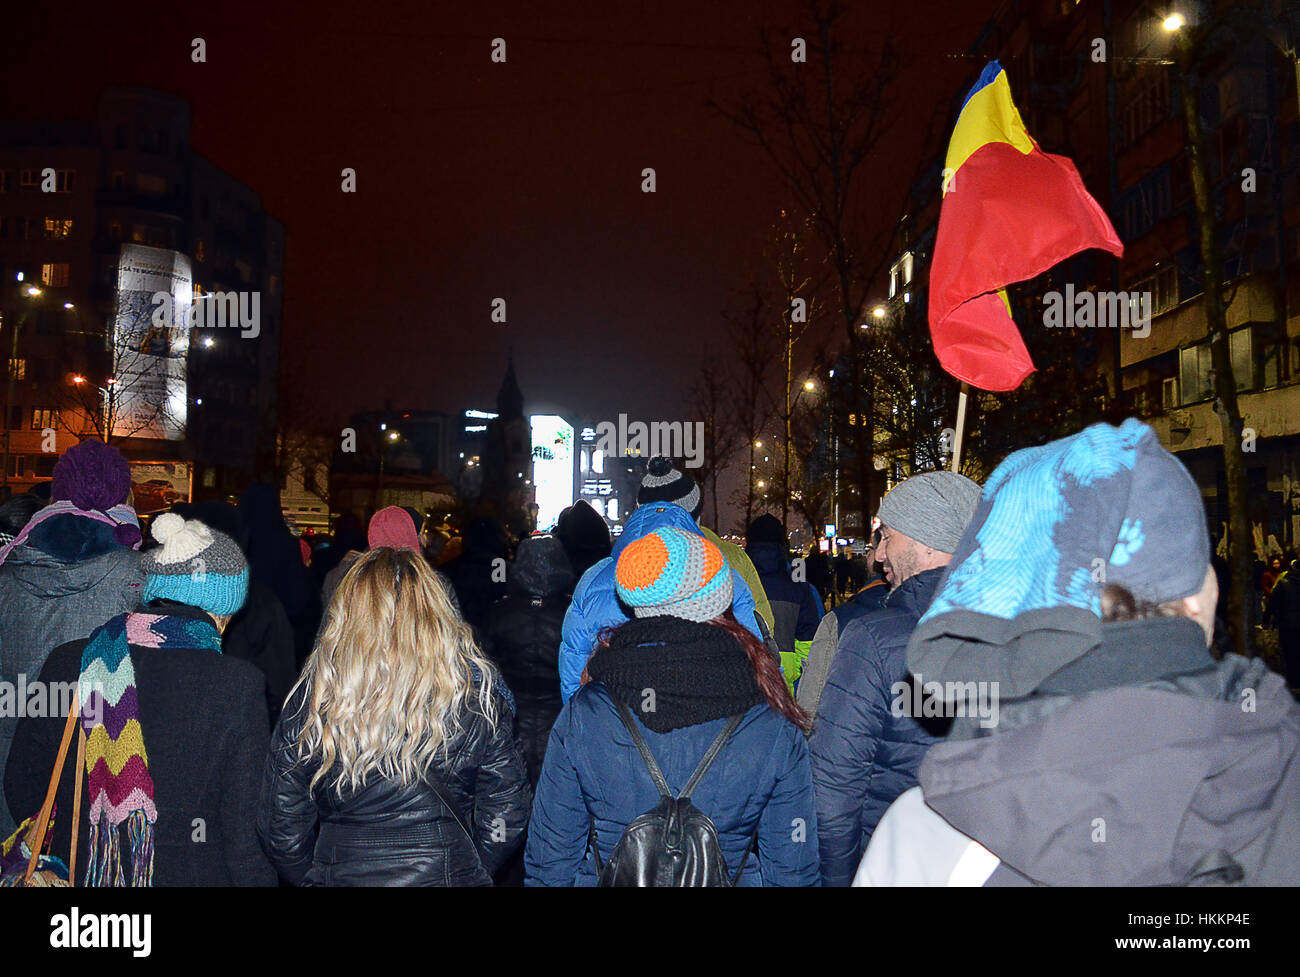 Bucharest, Romania. 29th Jan, 2017. More than 50,000 people took to the streets of Bucharest to protest against - Stock Image